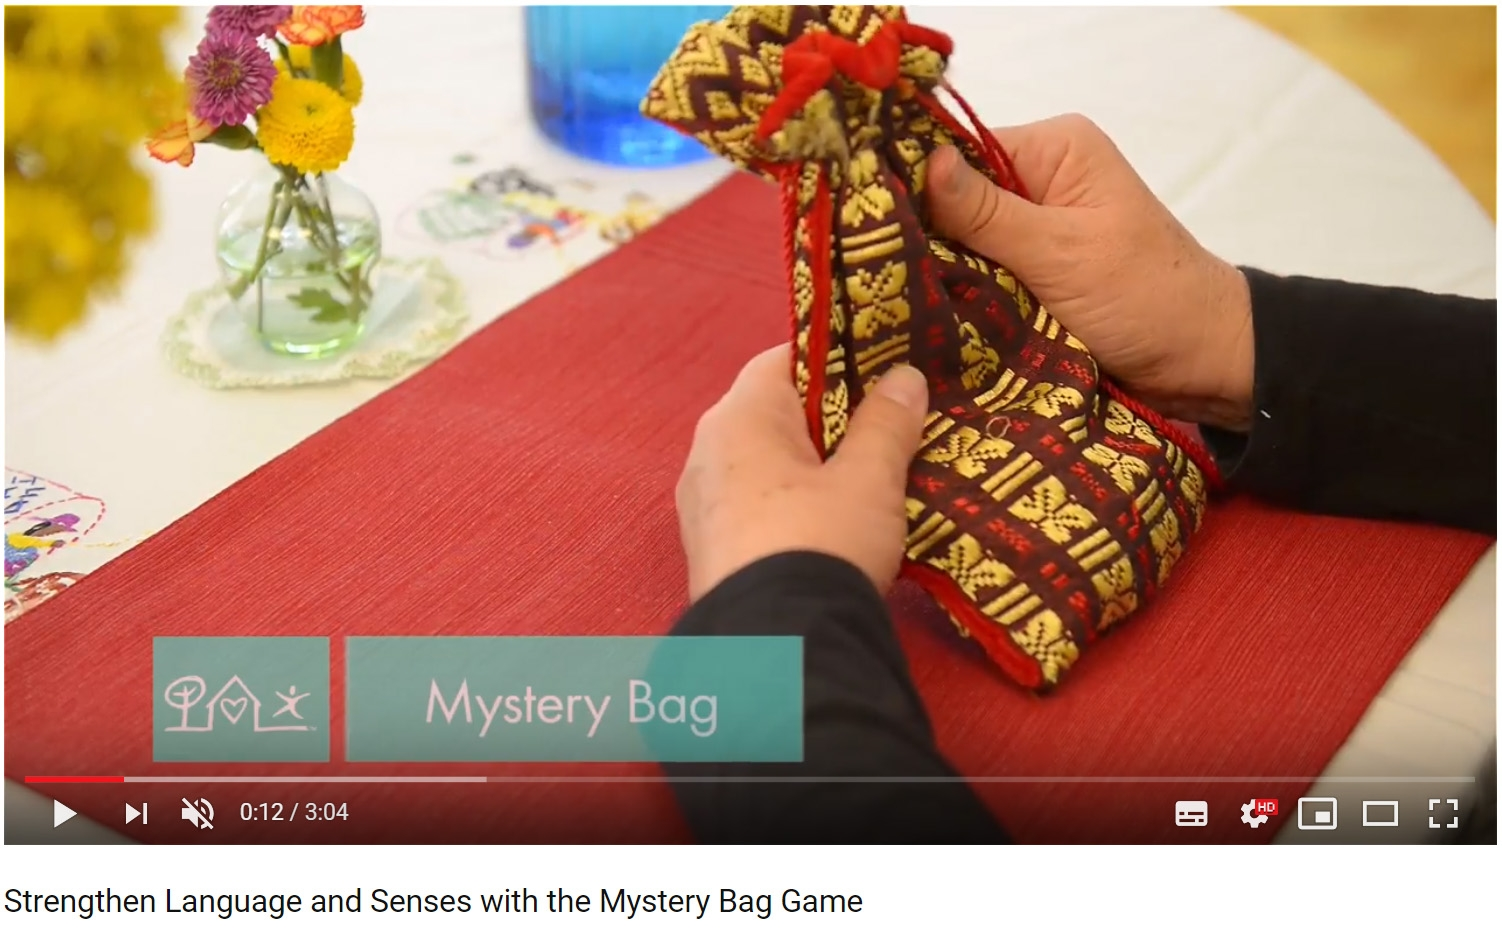 montessoi stereognostic mystery bag